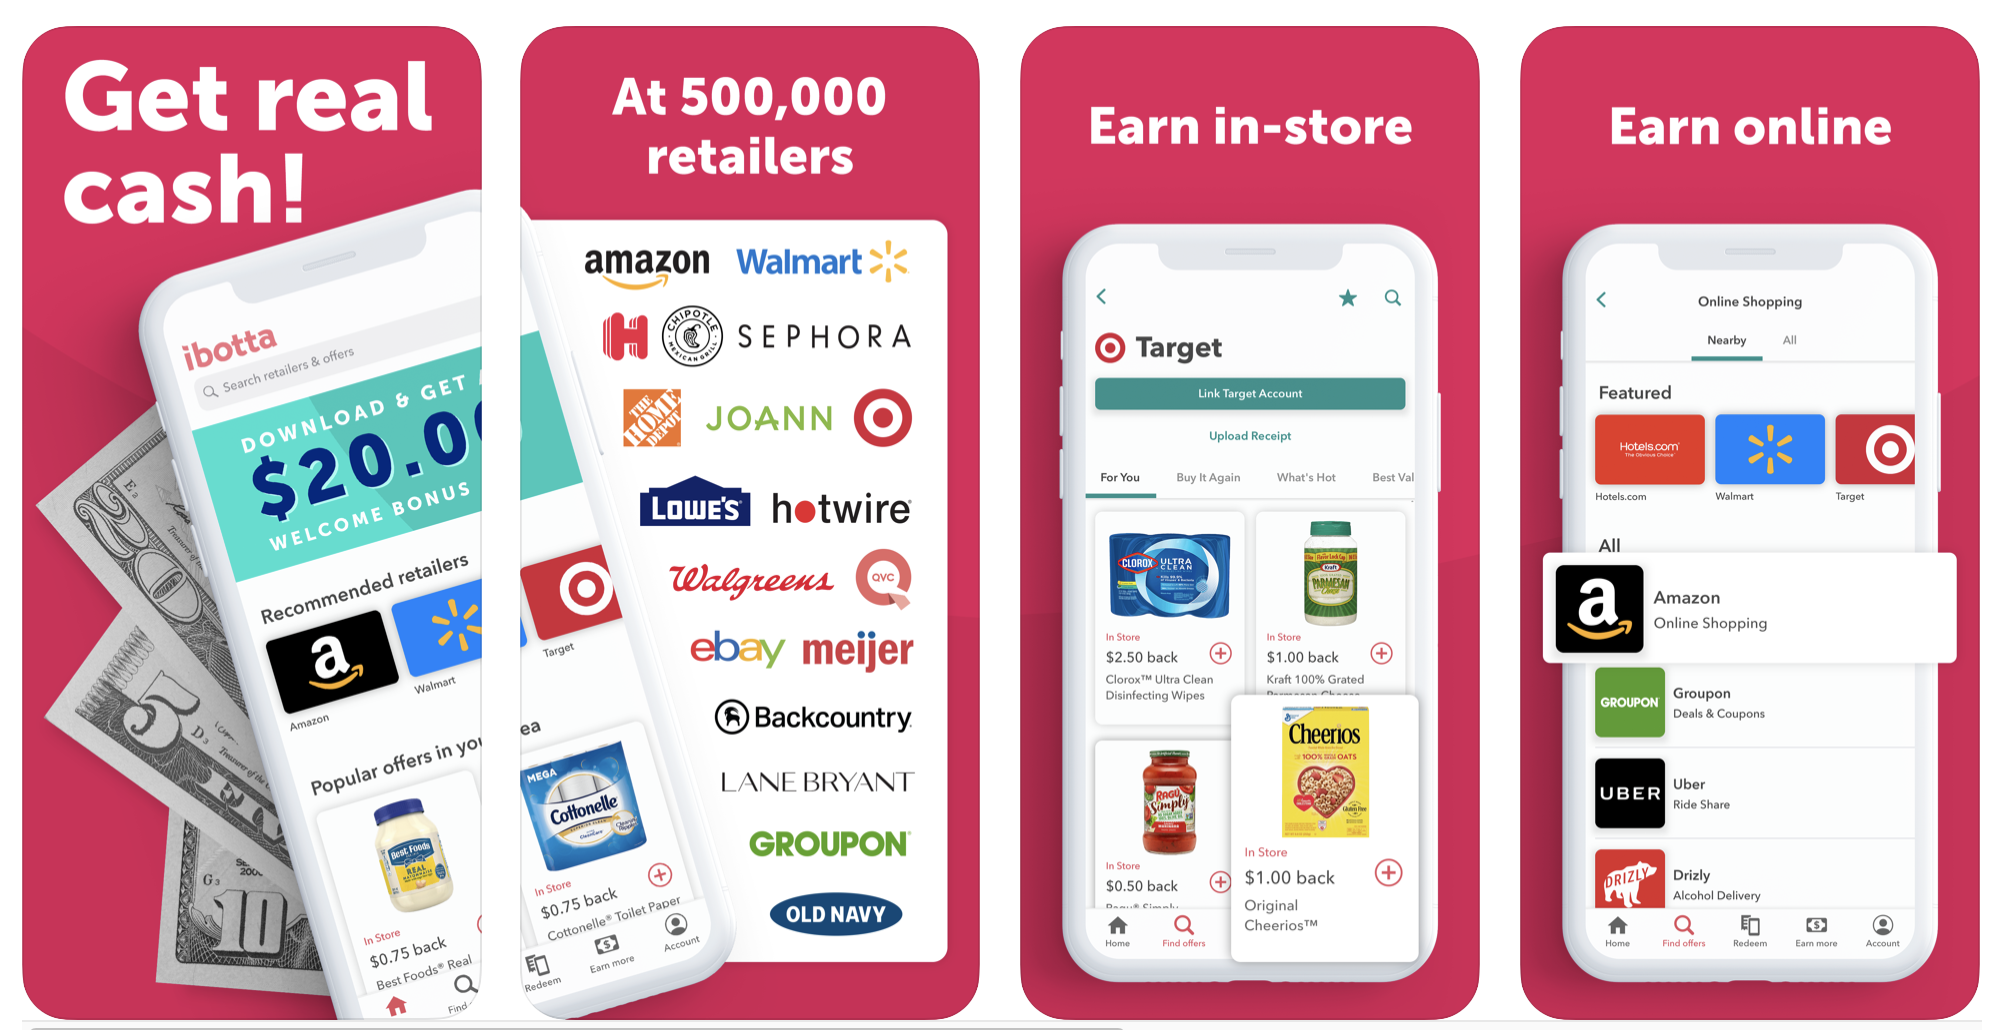 Screens showing that the app works for 500,000 retailers